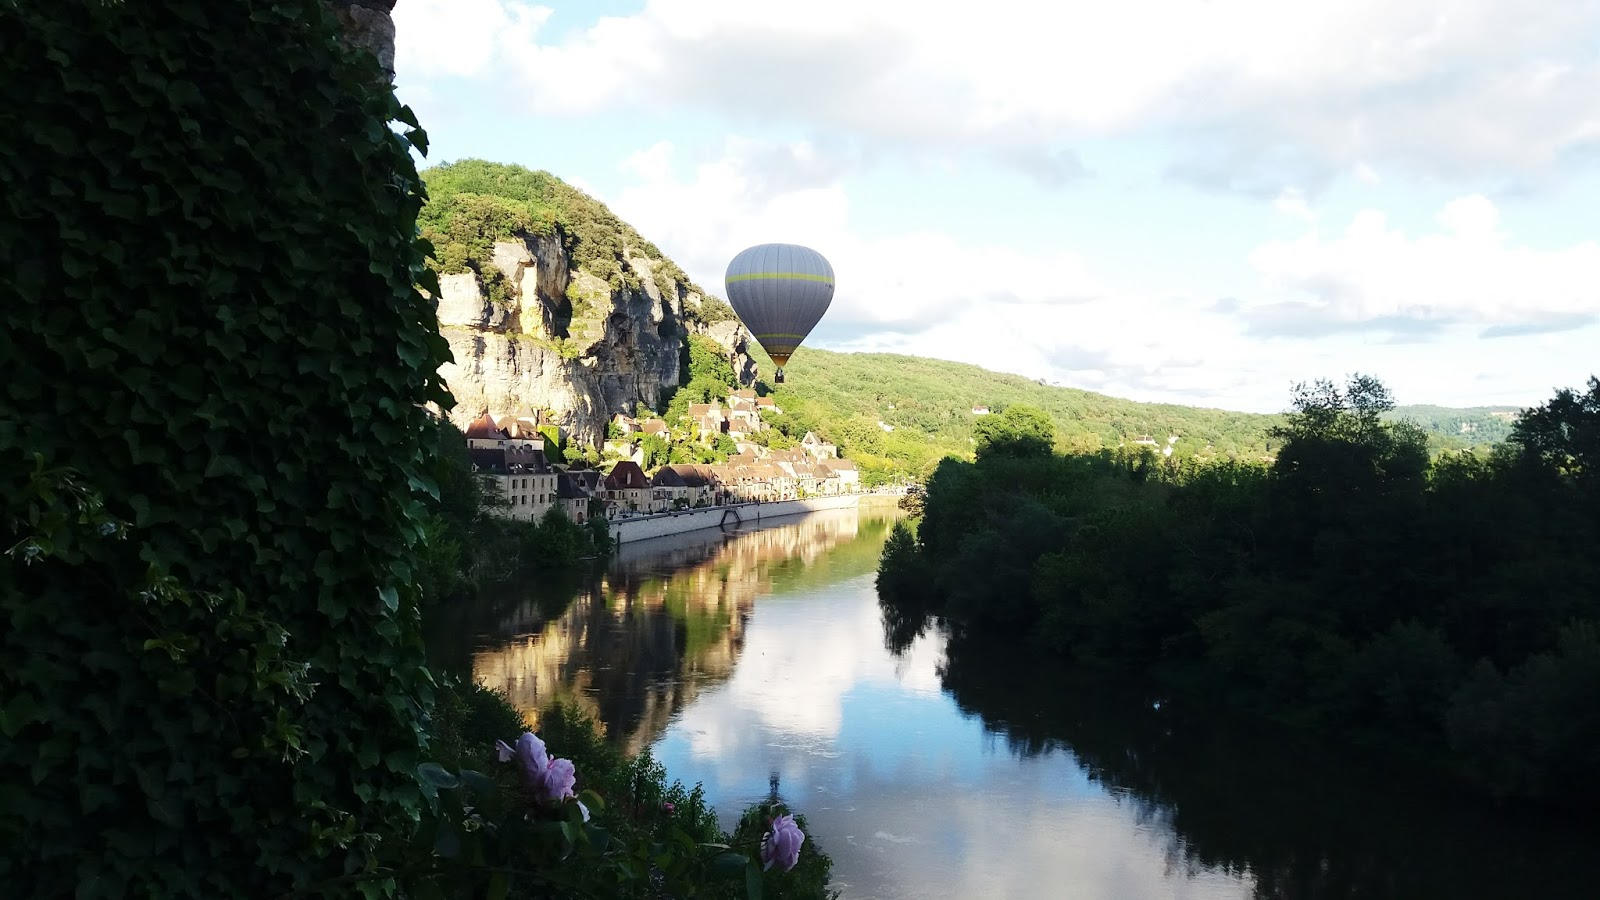 Hot air balloon in La Roque-Gageac landing on the Dordogne